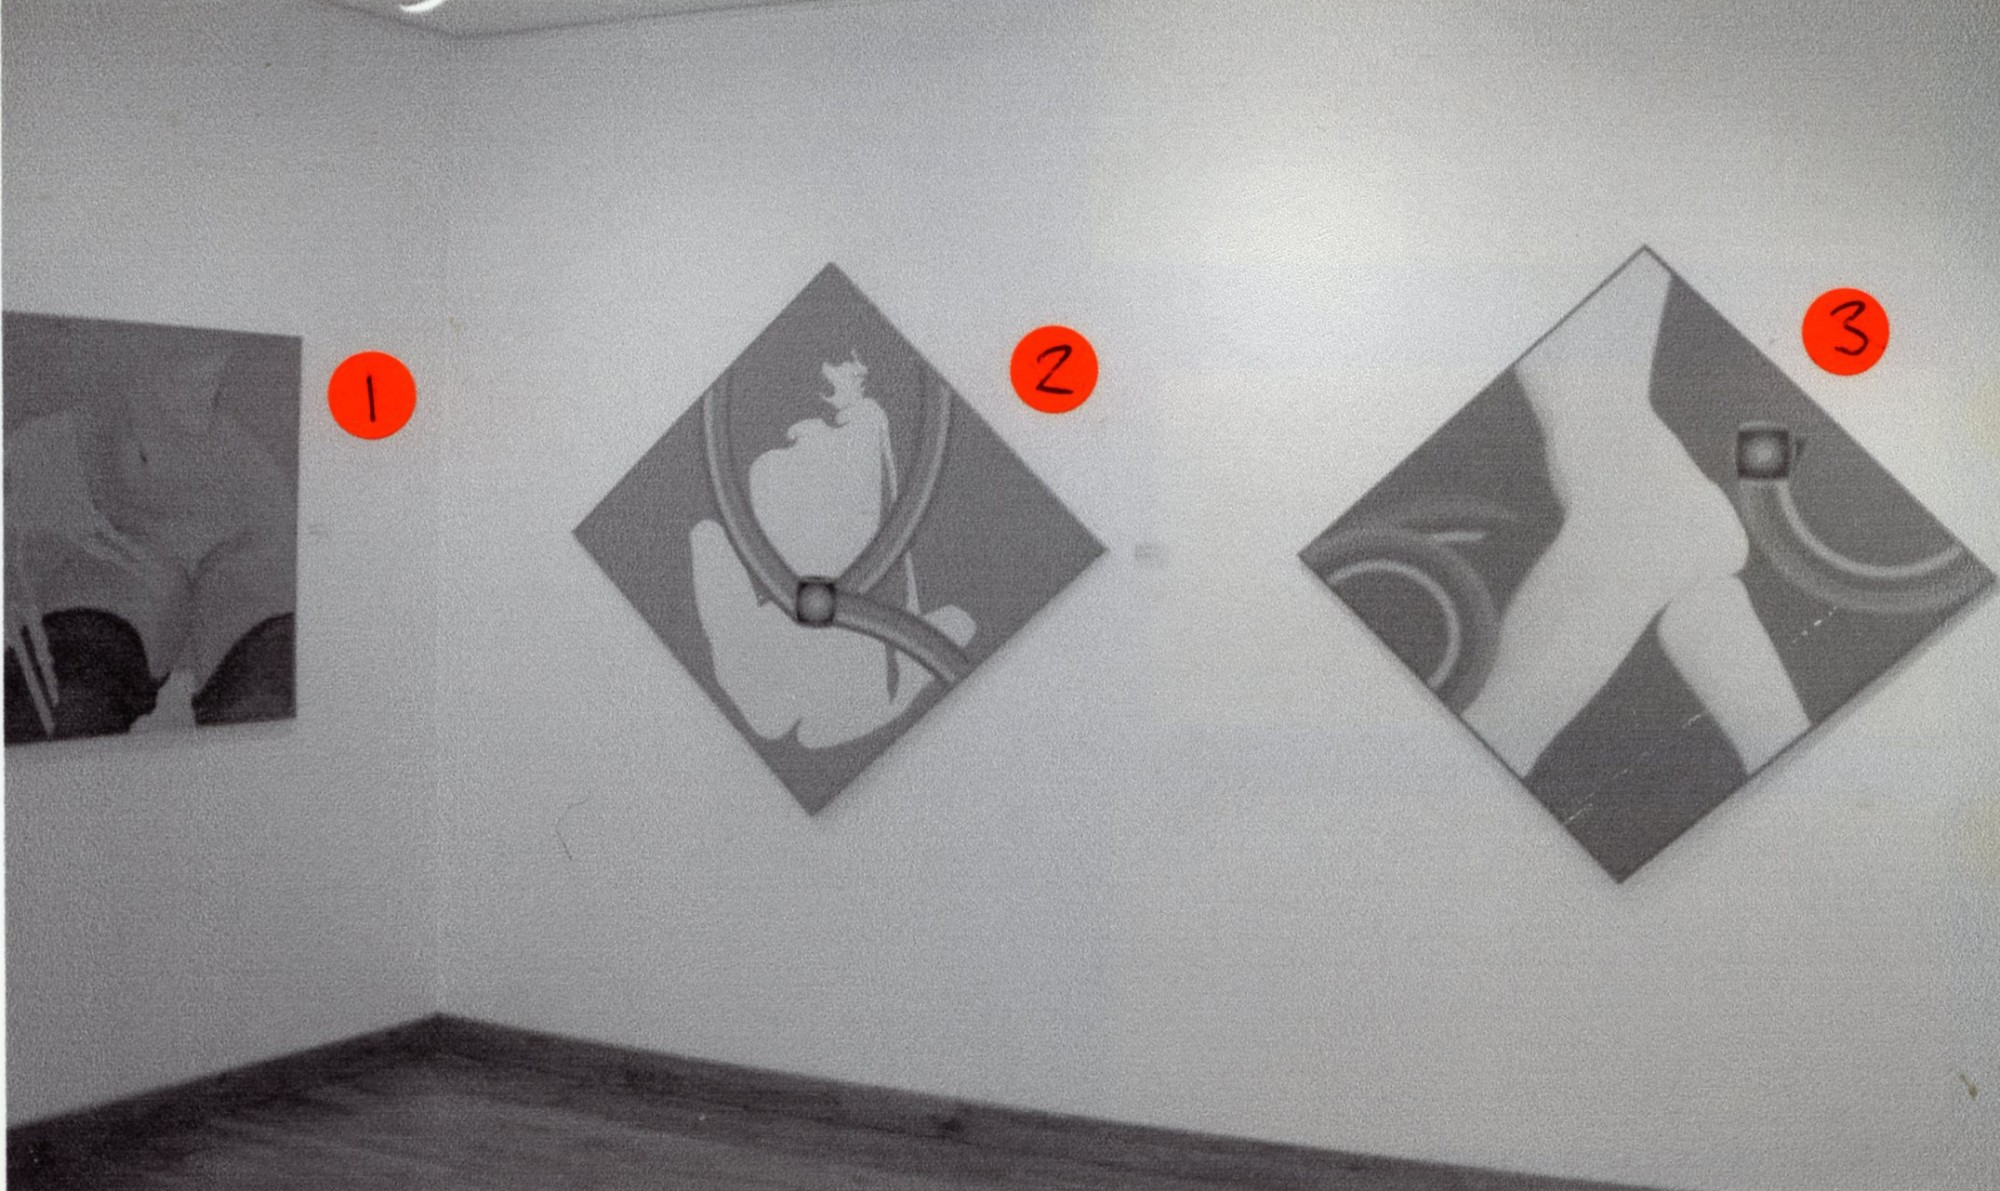 """<span class=""""link fancybox-details-link""""><a href=""""/exhibitions/131/works/image_standalone539/"""">View Detail Page</a></span><p>EVELYNE AXELL   EROTOMOBILES   05 JUN - 31 AUG 2003   Installation View</p>"""